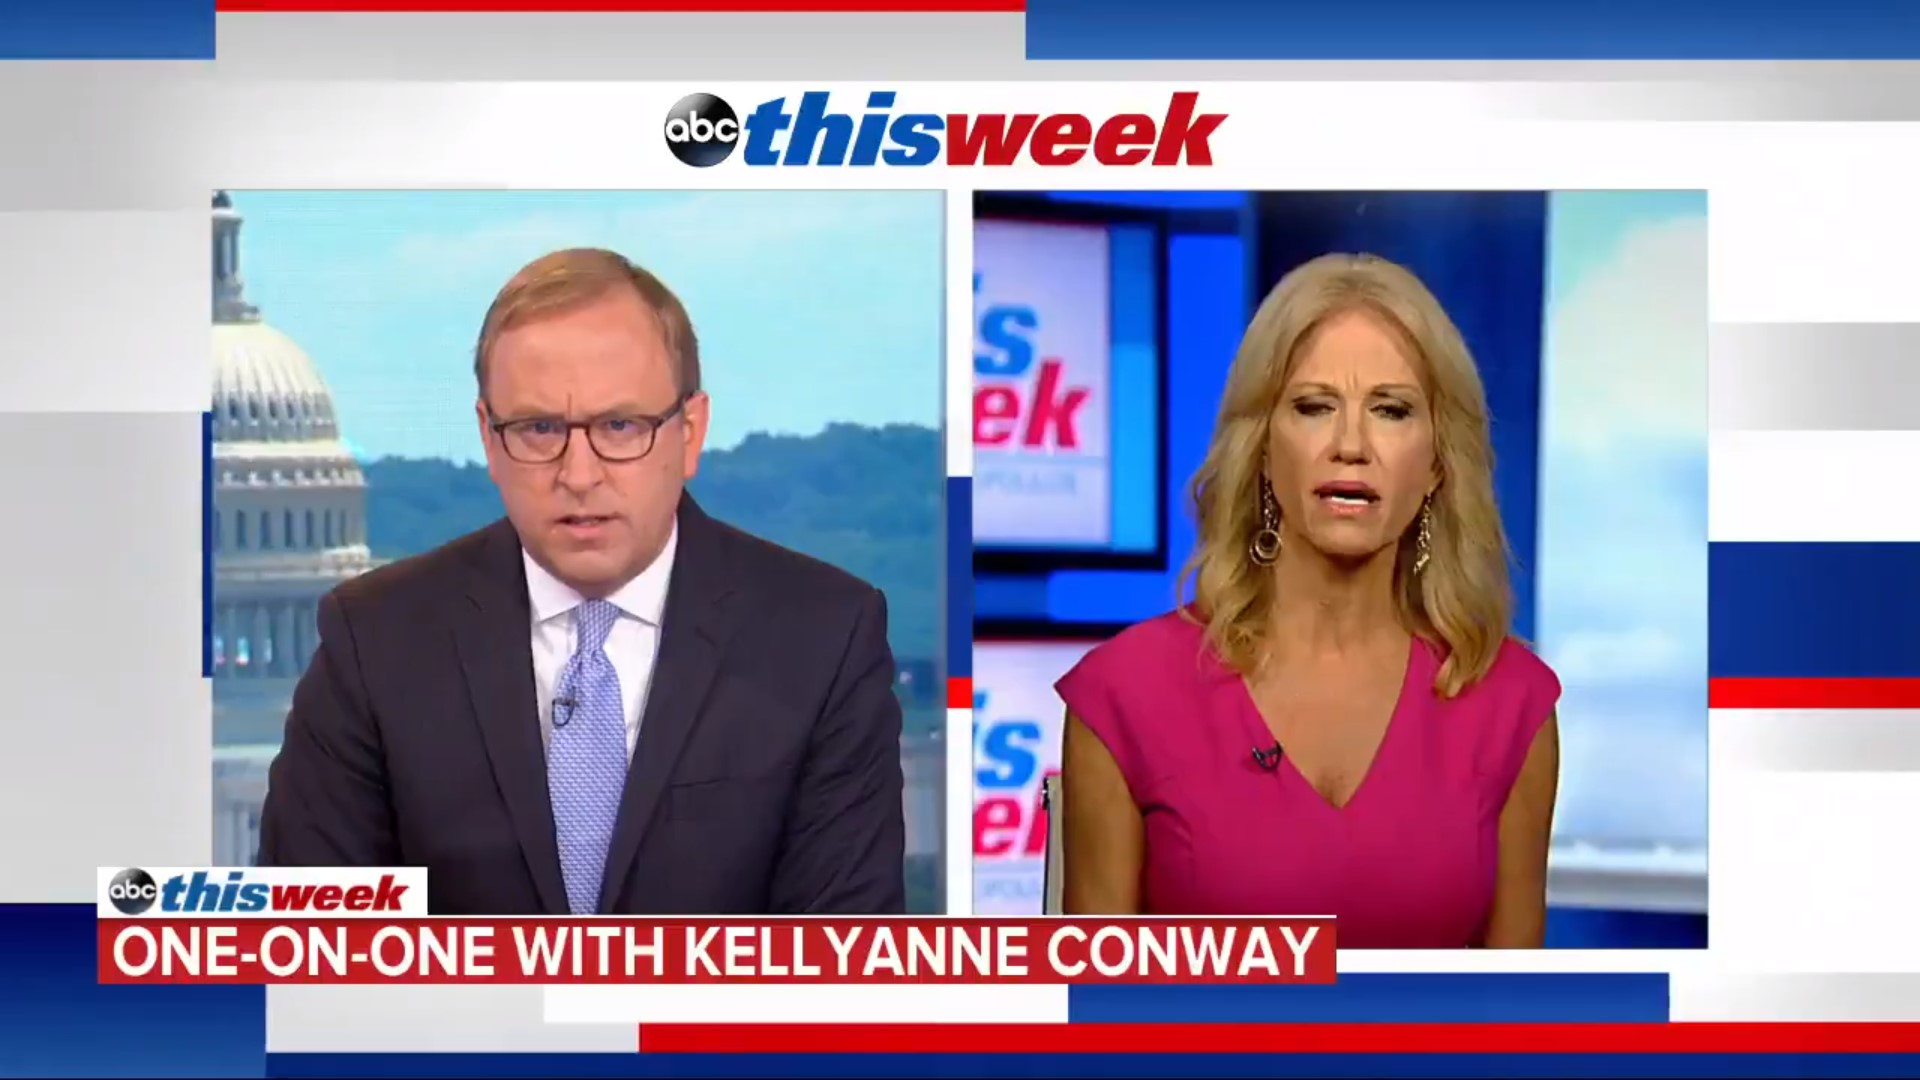 WATCH: Kellyanne Conway Can't Name Highest-Ranking Black Official In White House